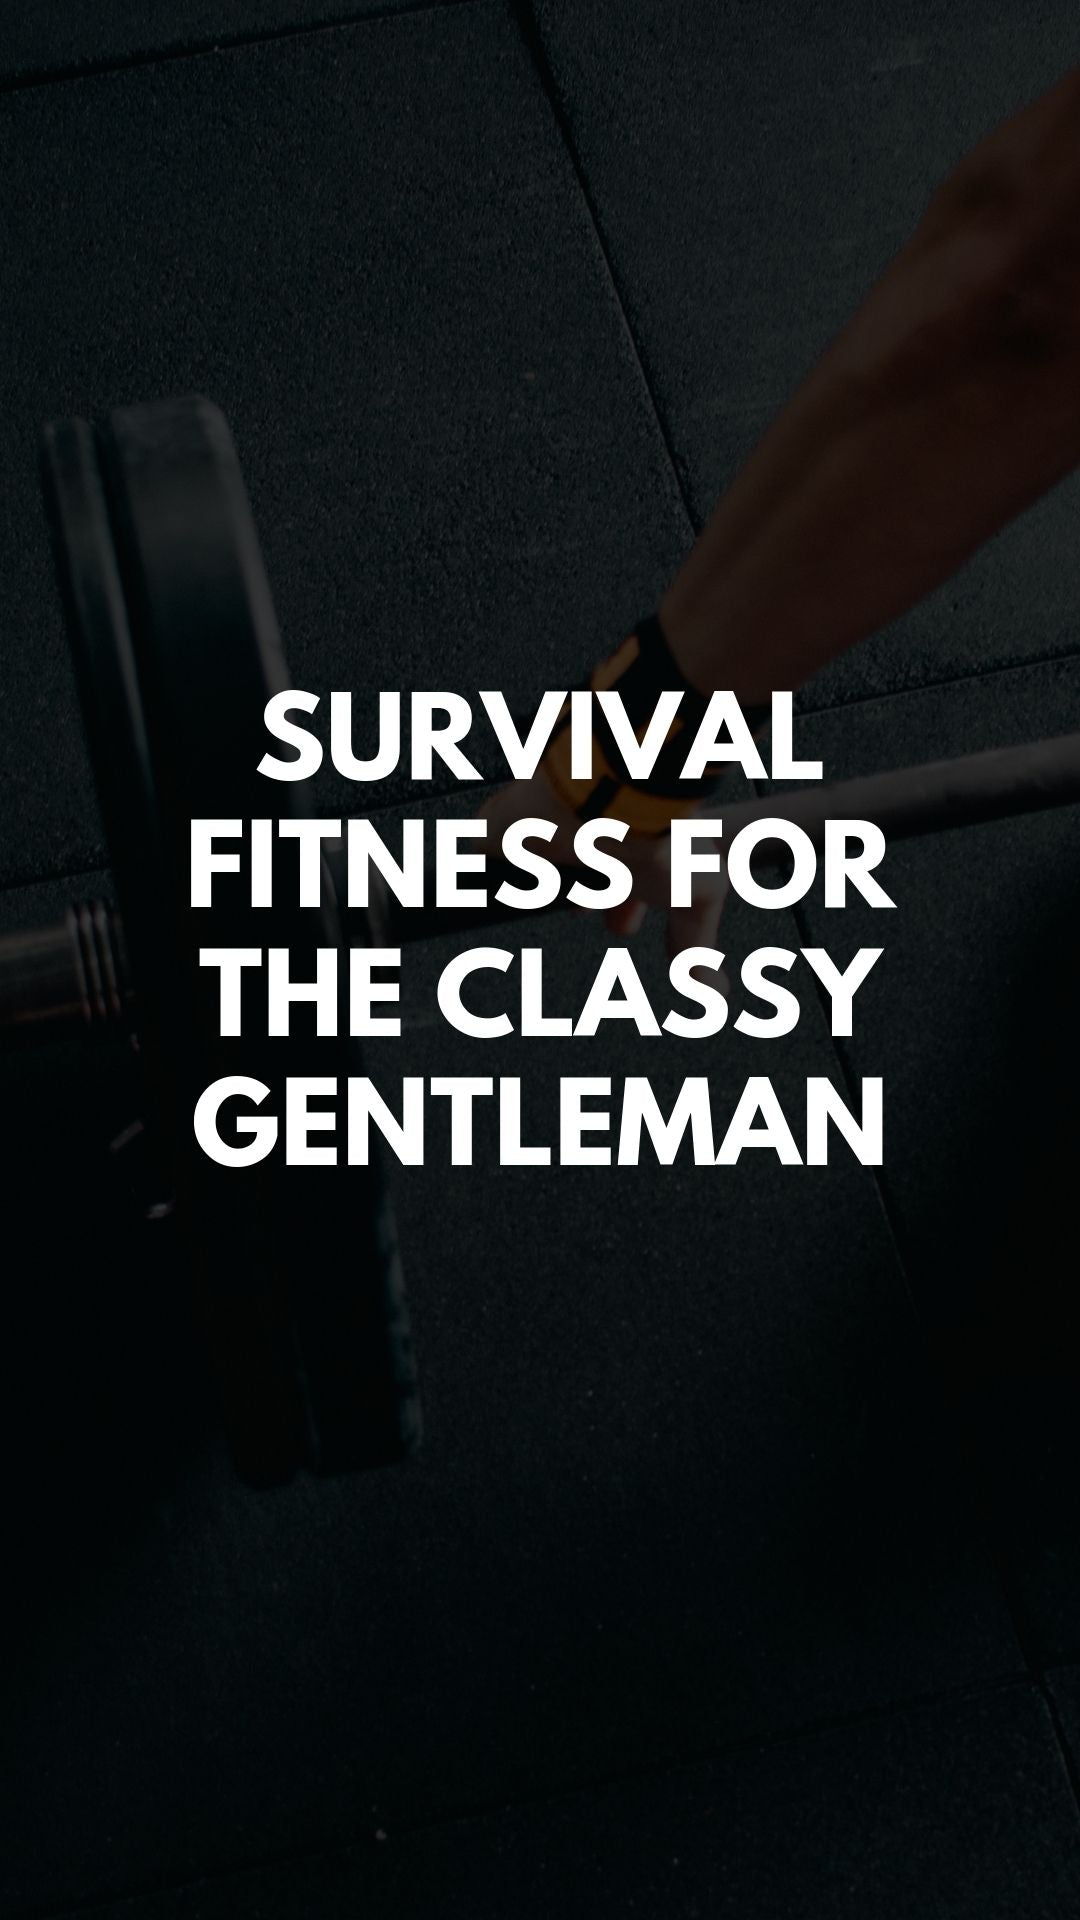 Survival Fitness For the Classy Gentleman